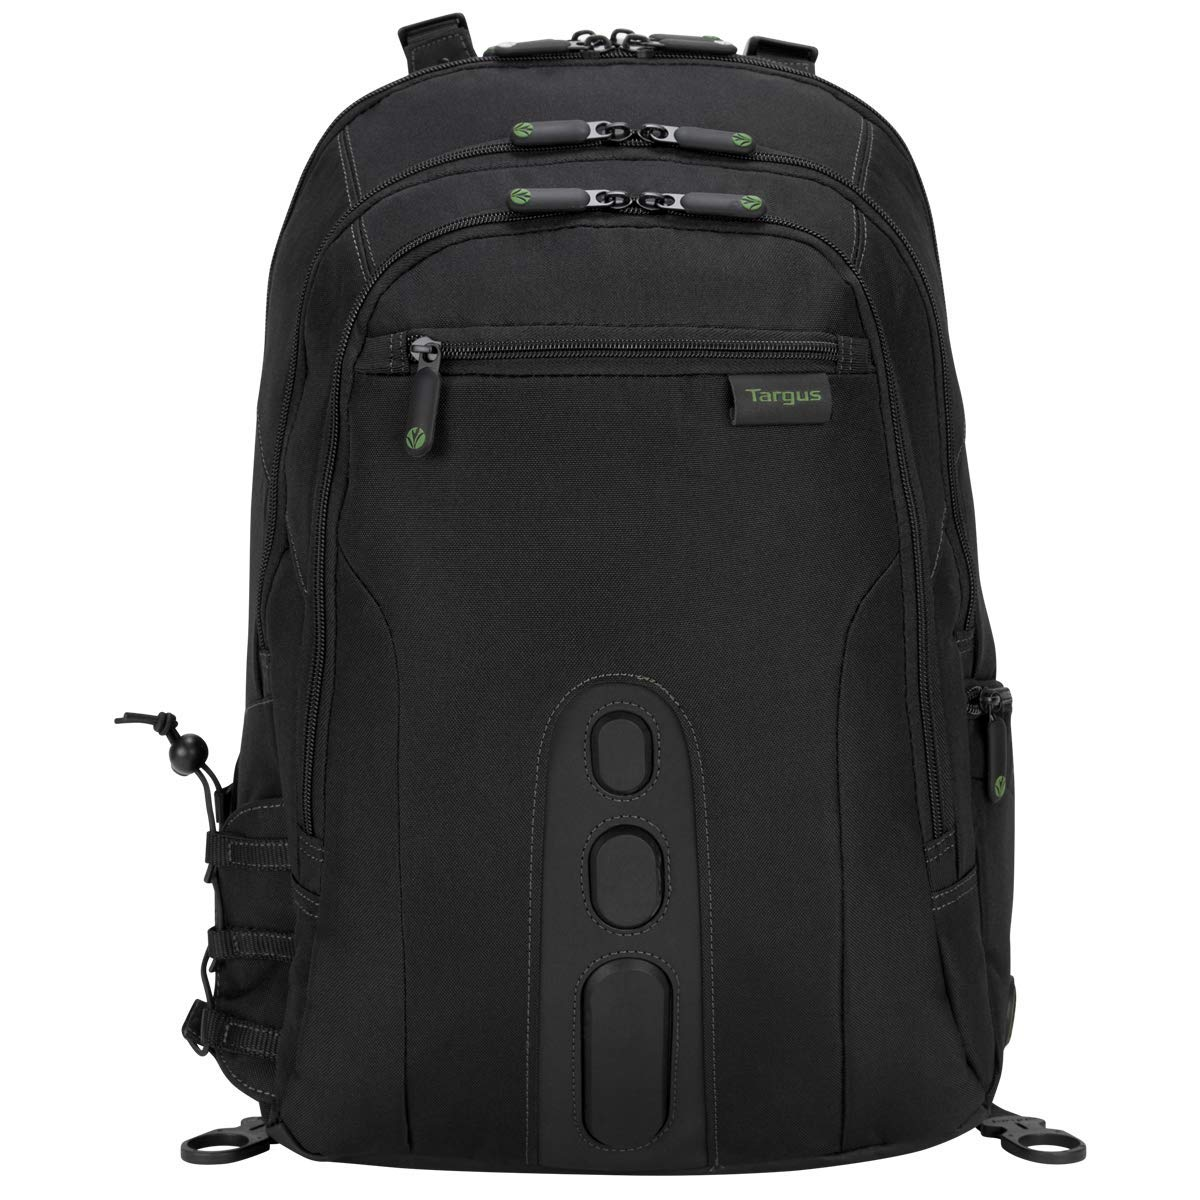 Targus Spruce EcoSmart Travel and Checkpoint-Friendly Laptop Backpack for 15.6-Inch Laptop, Black (TBB013US) by Targus